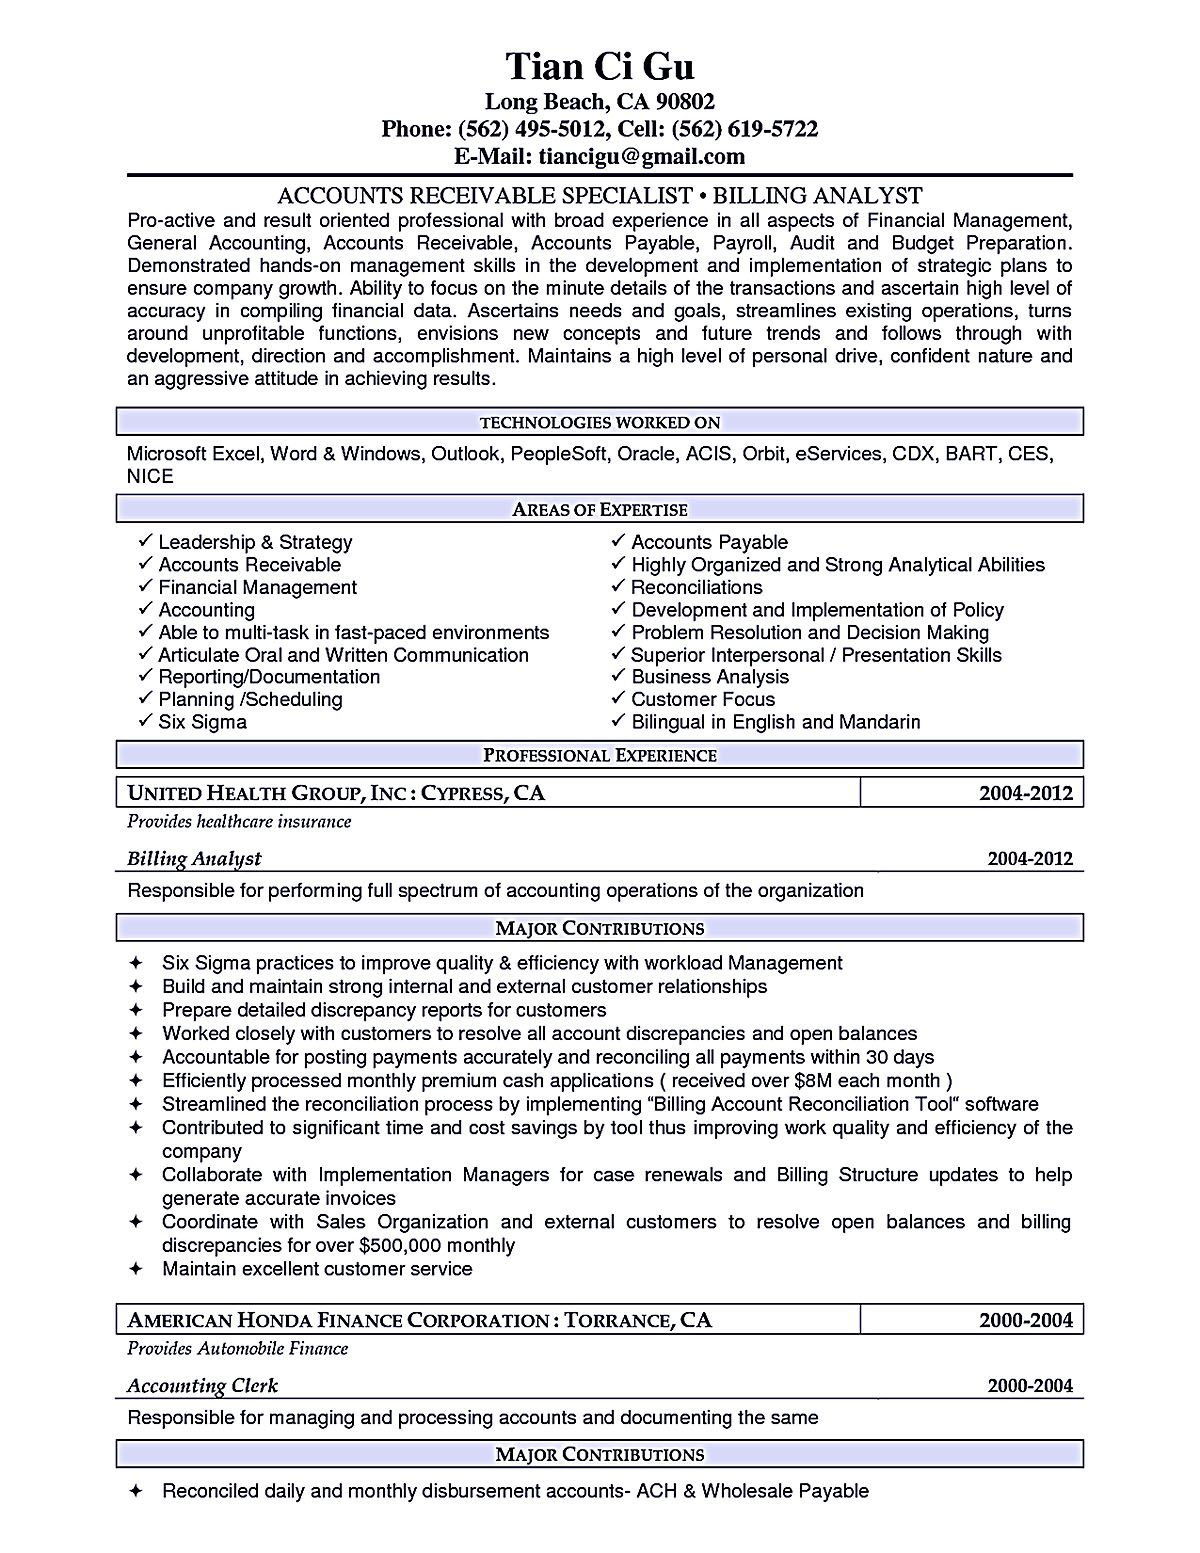 account receivable resume shows both technical and interpersonal the accounts receivable resume summary will be accounts receivable job description resume and accounts receivable resume objective